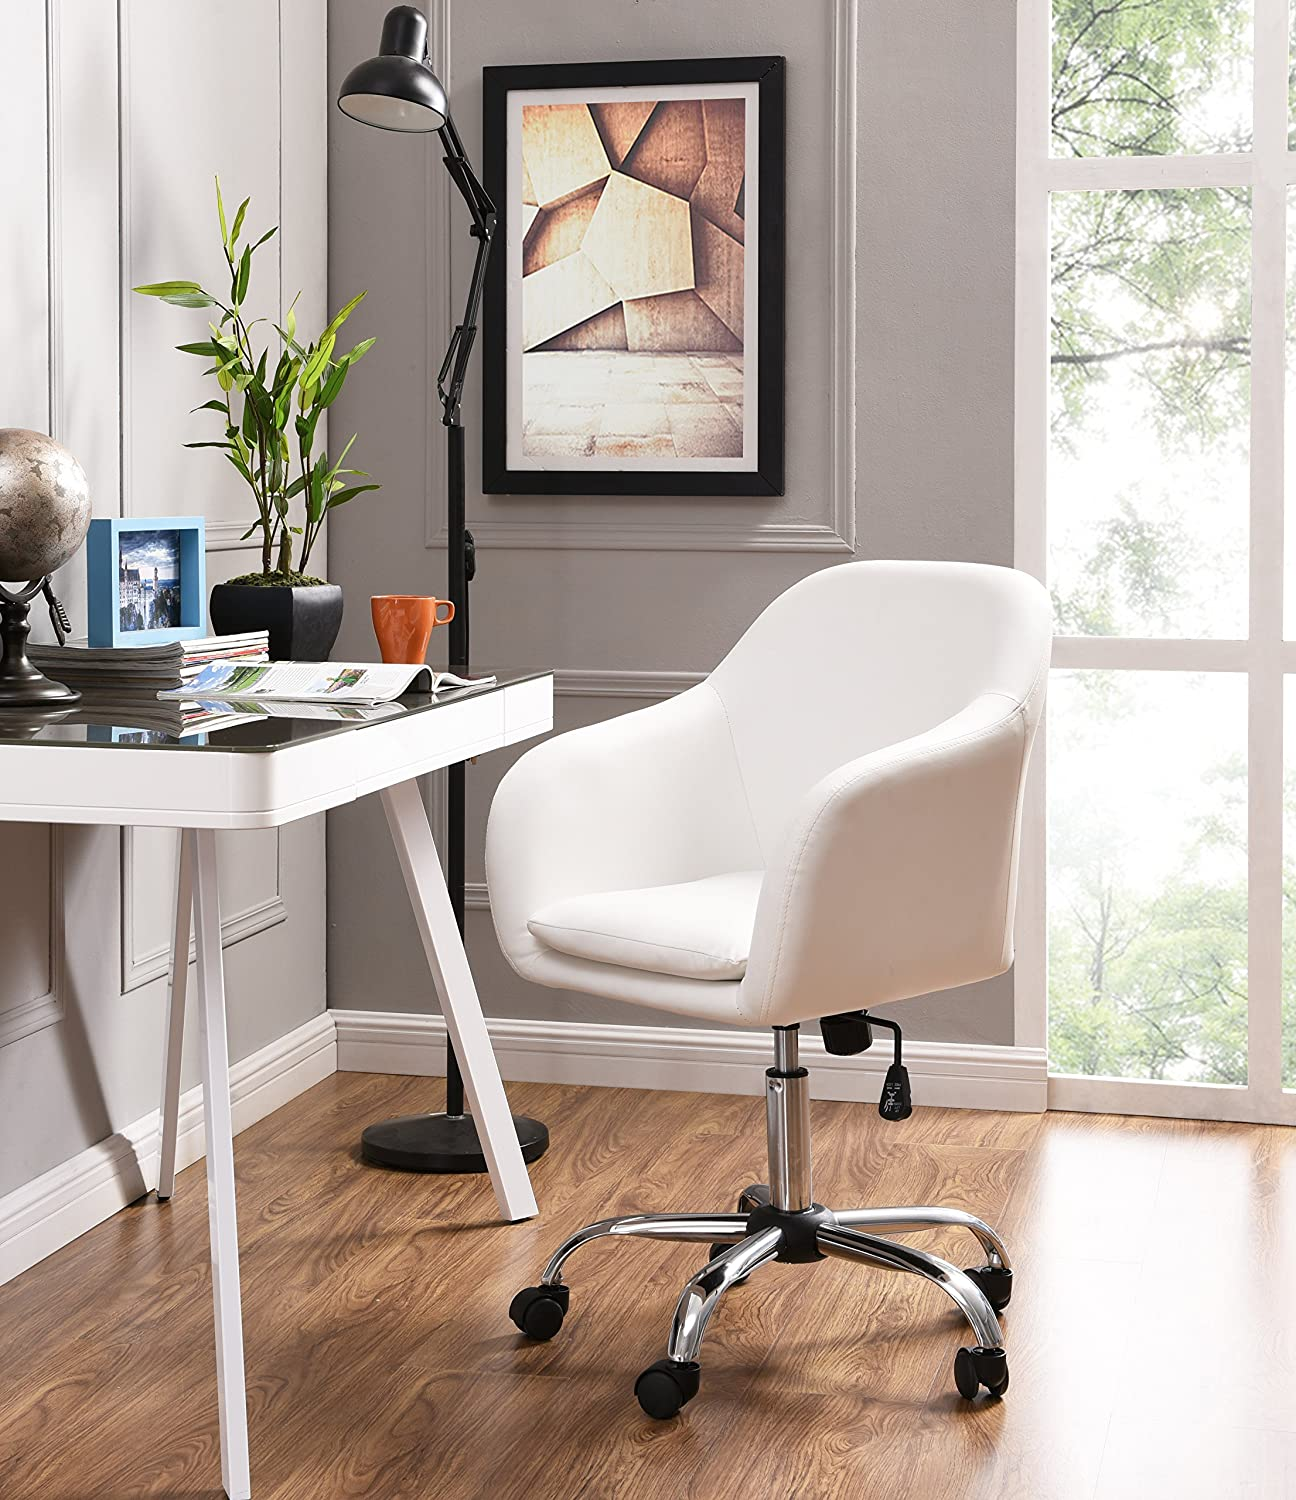 Amazon com home office chair executive mid back computer table desk chair swivel height adjustable ergonomic with armrest white kitchen dining